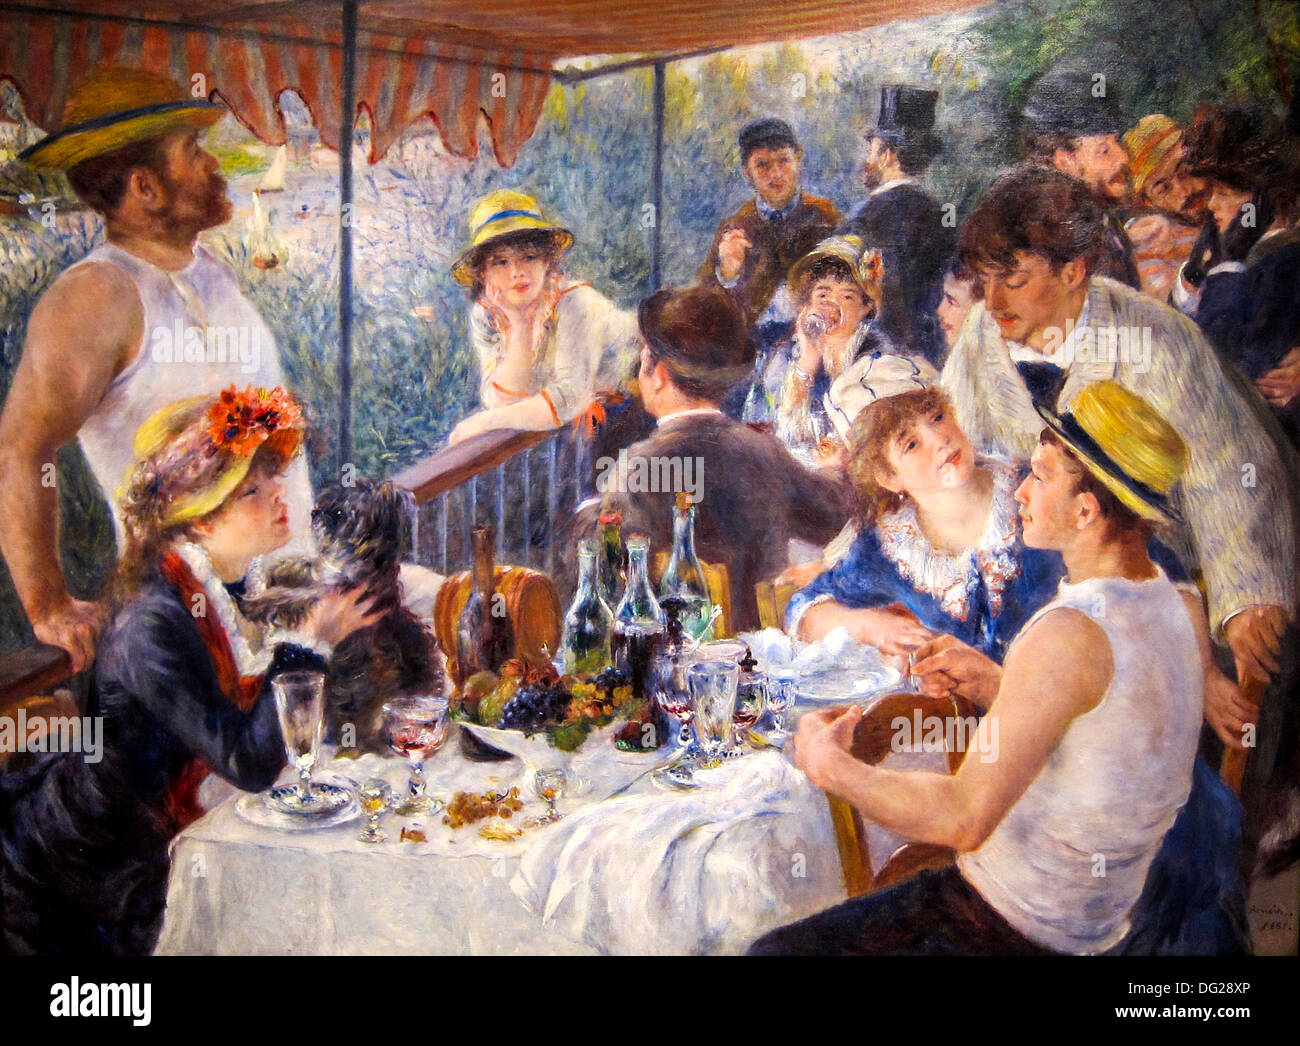 The Luncheon of the Boating Party by Renoir 1880 - Stock Image